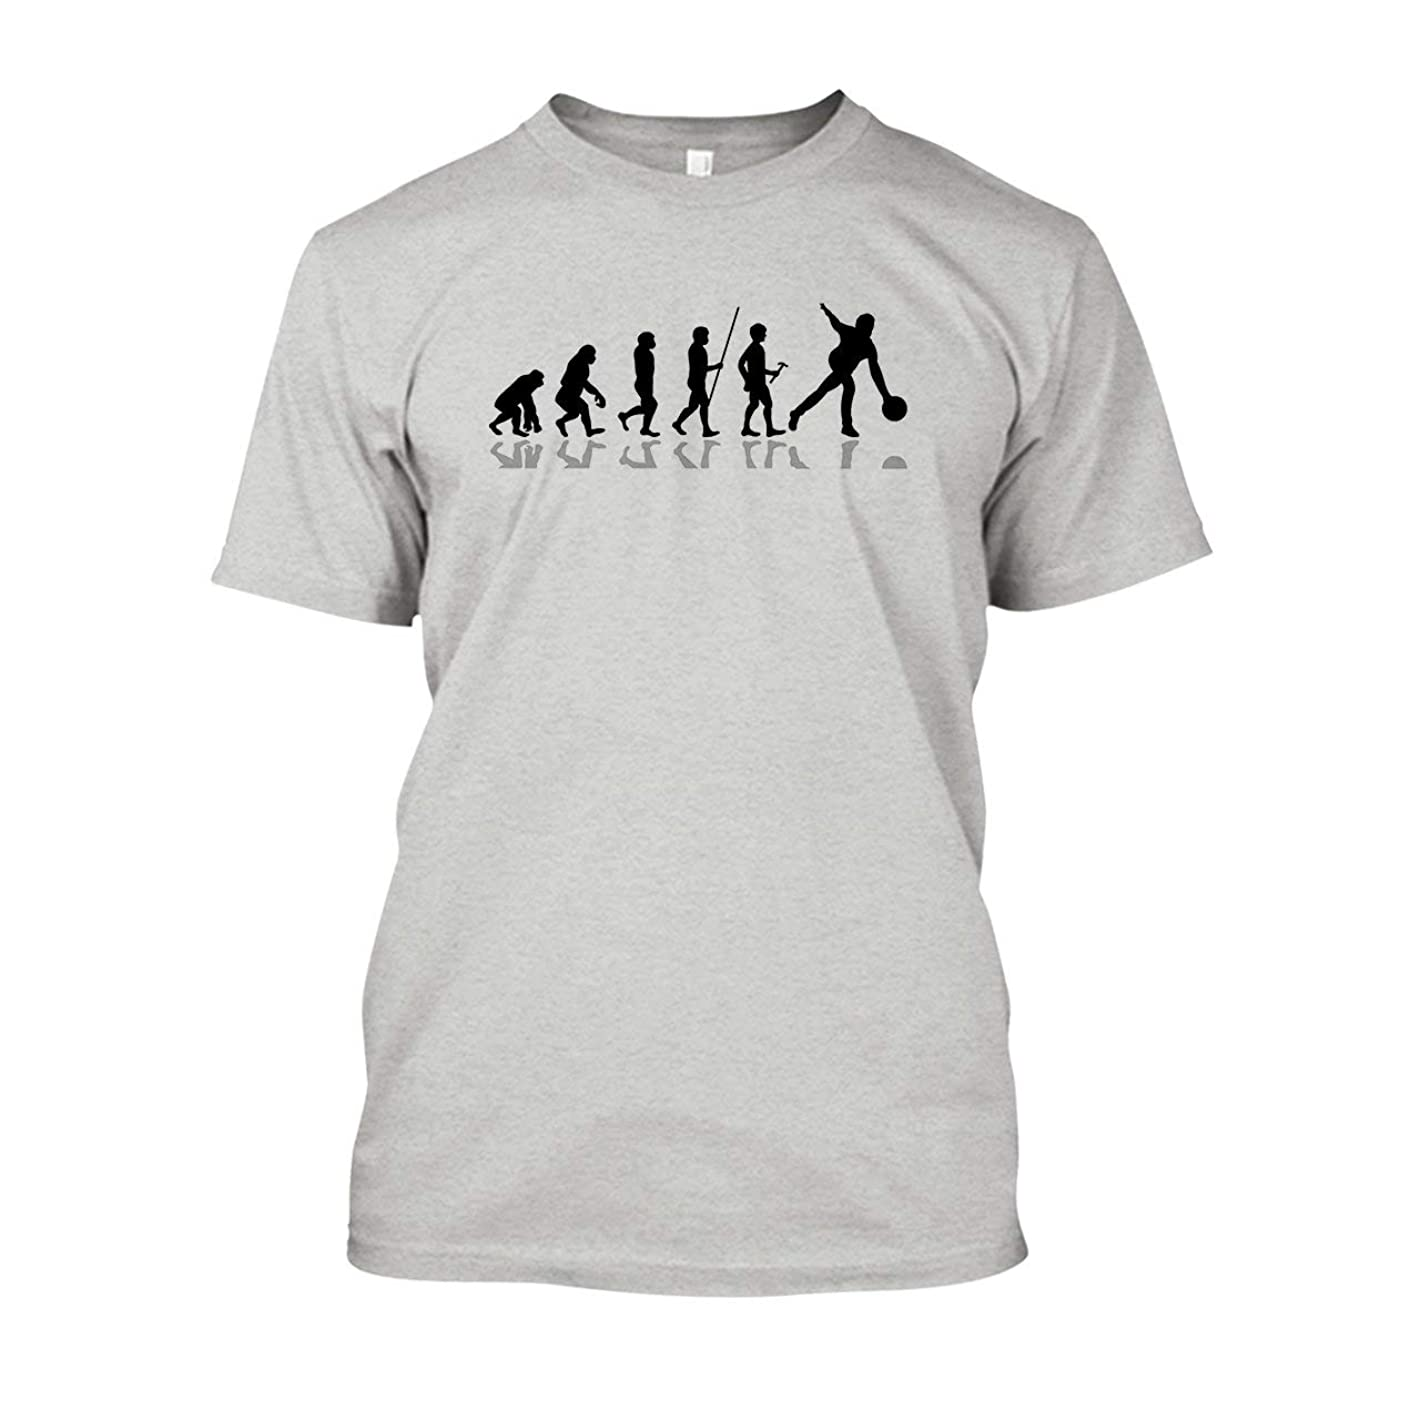 TeeTomato Bowling Evolution T Shirt, Short Sleeve Shirts, Clothes